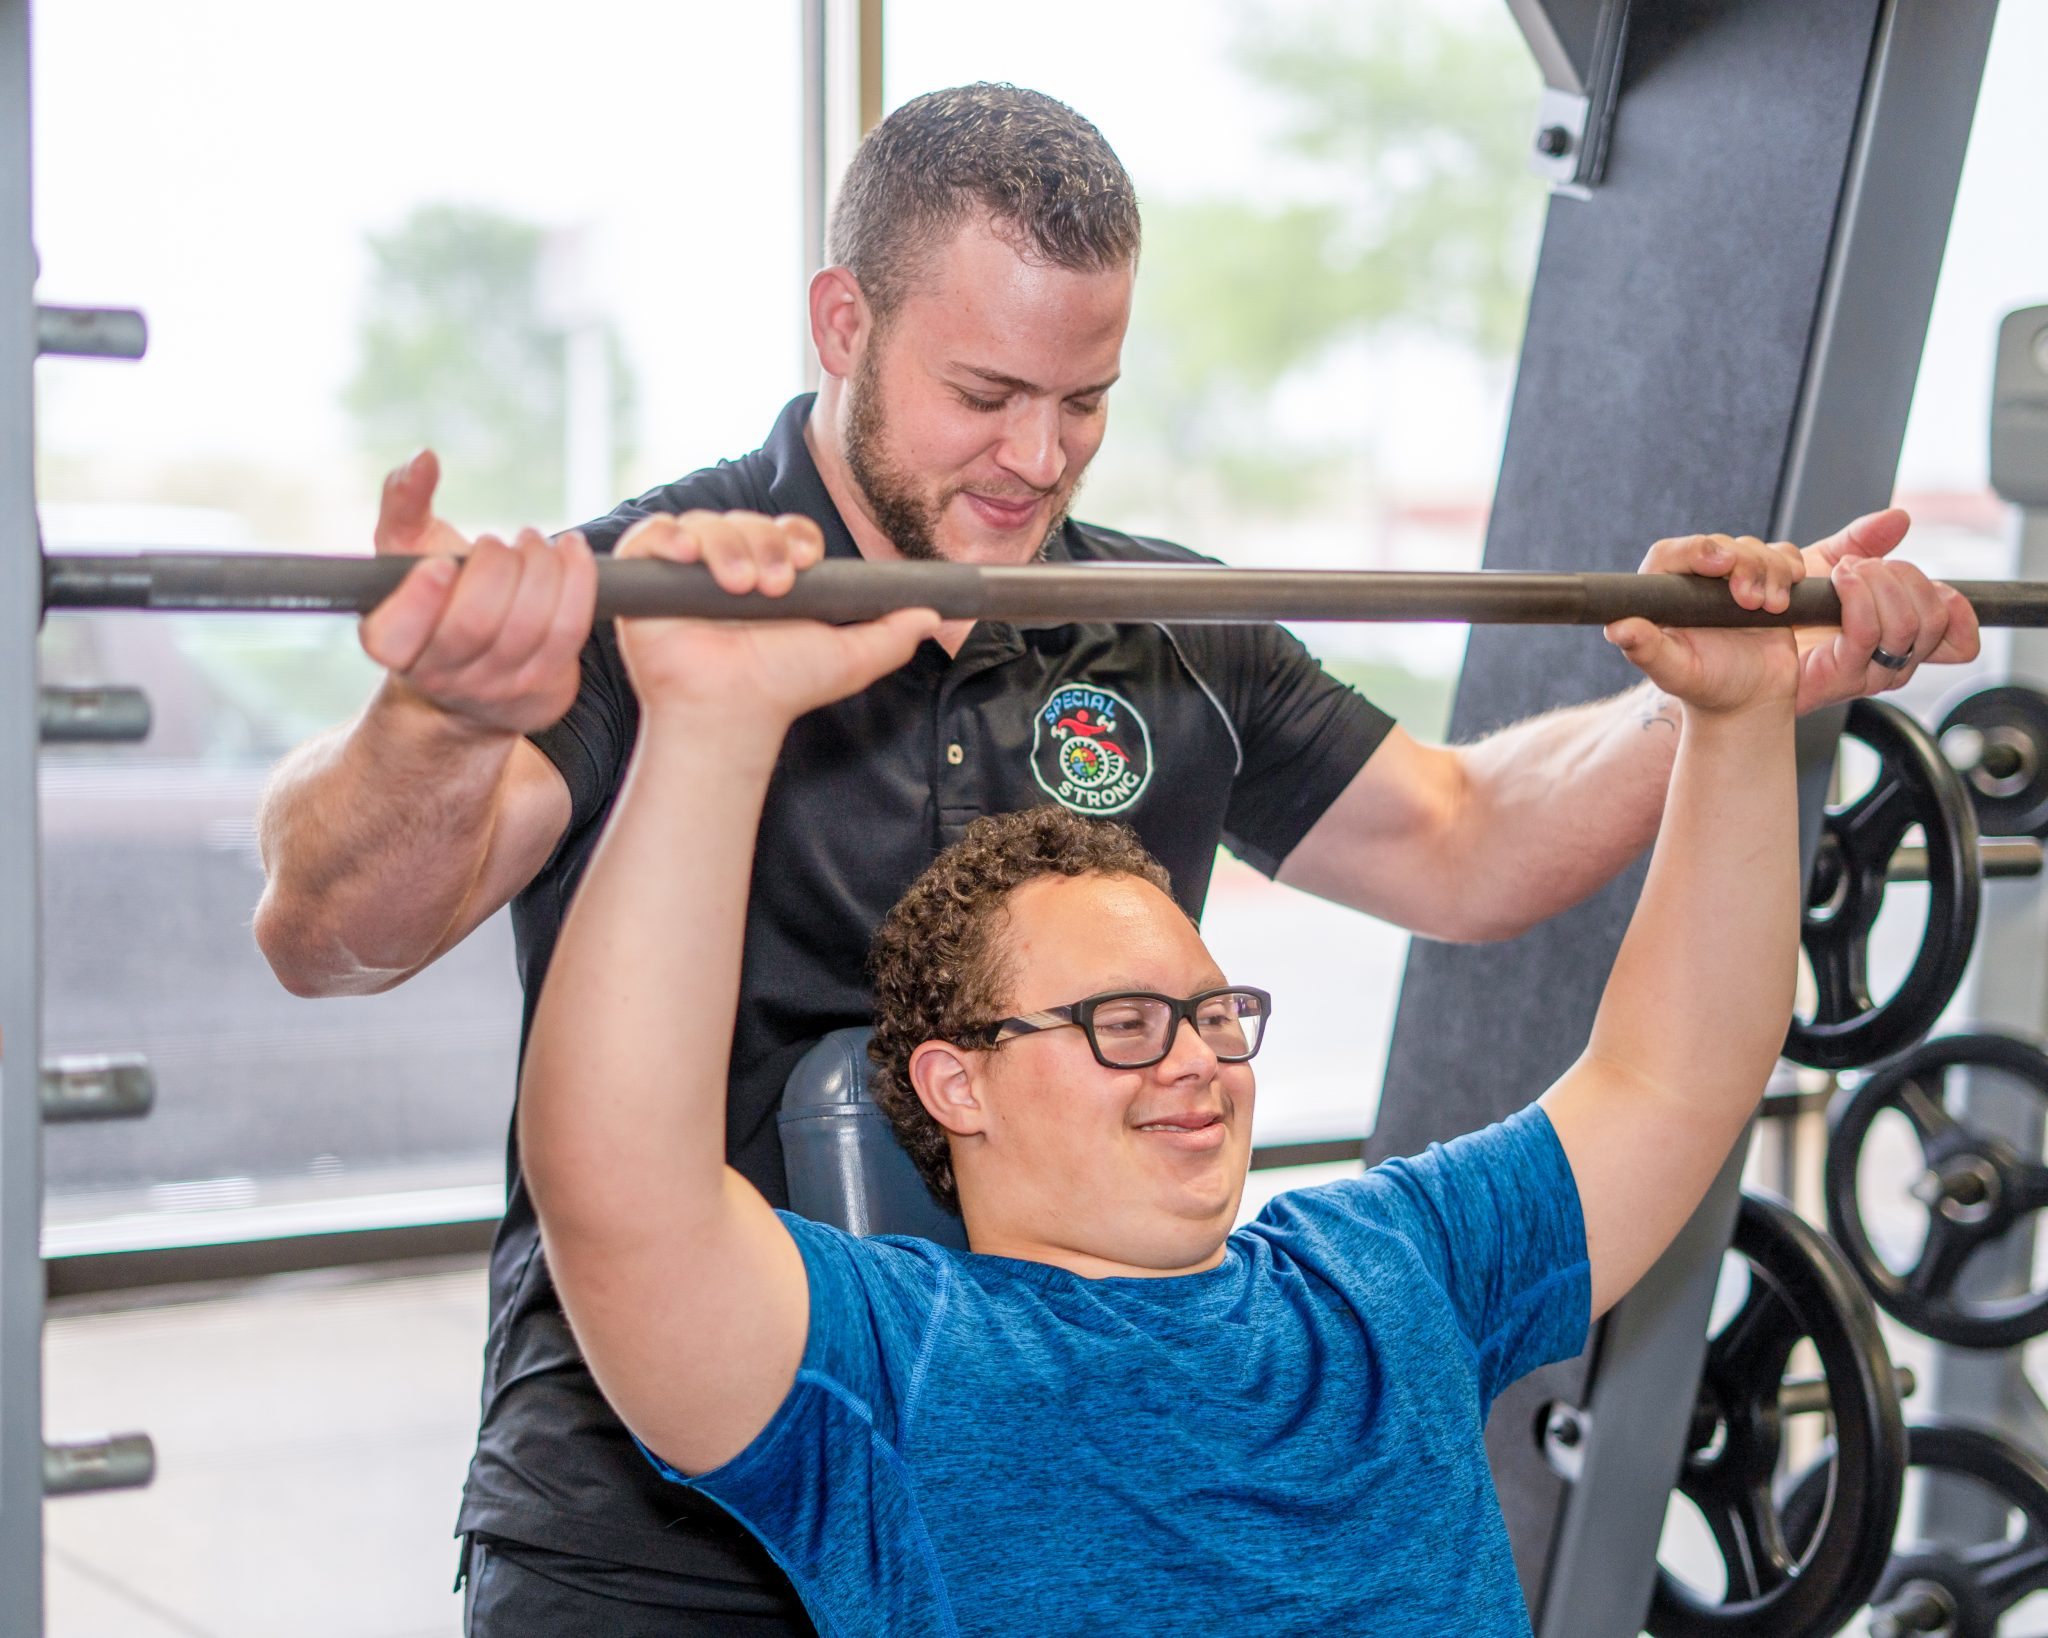 special strong adaptive fitness training barbell